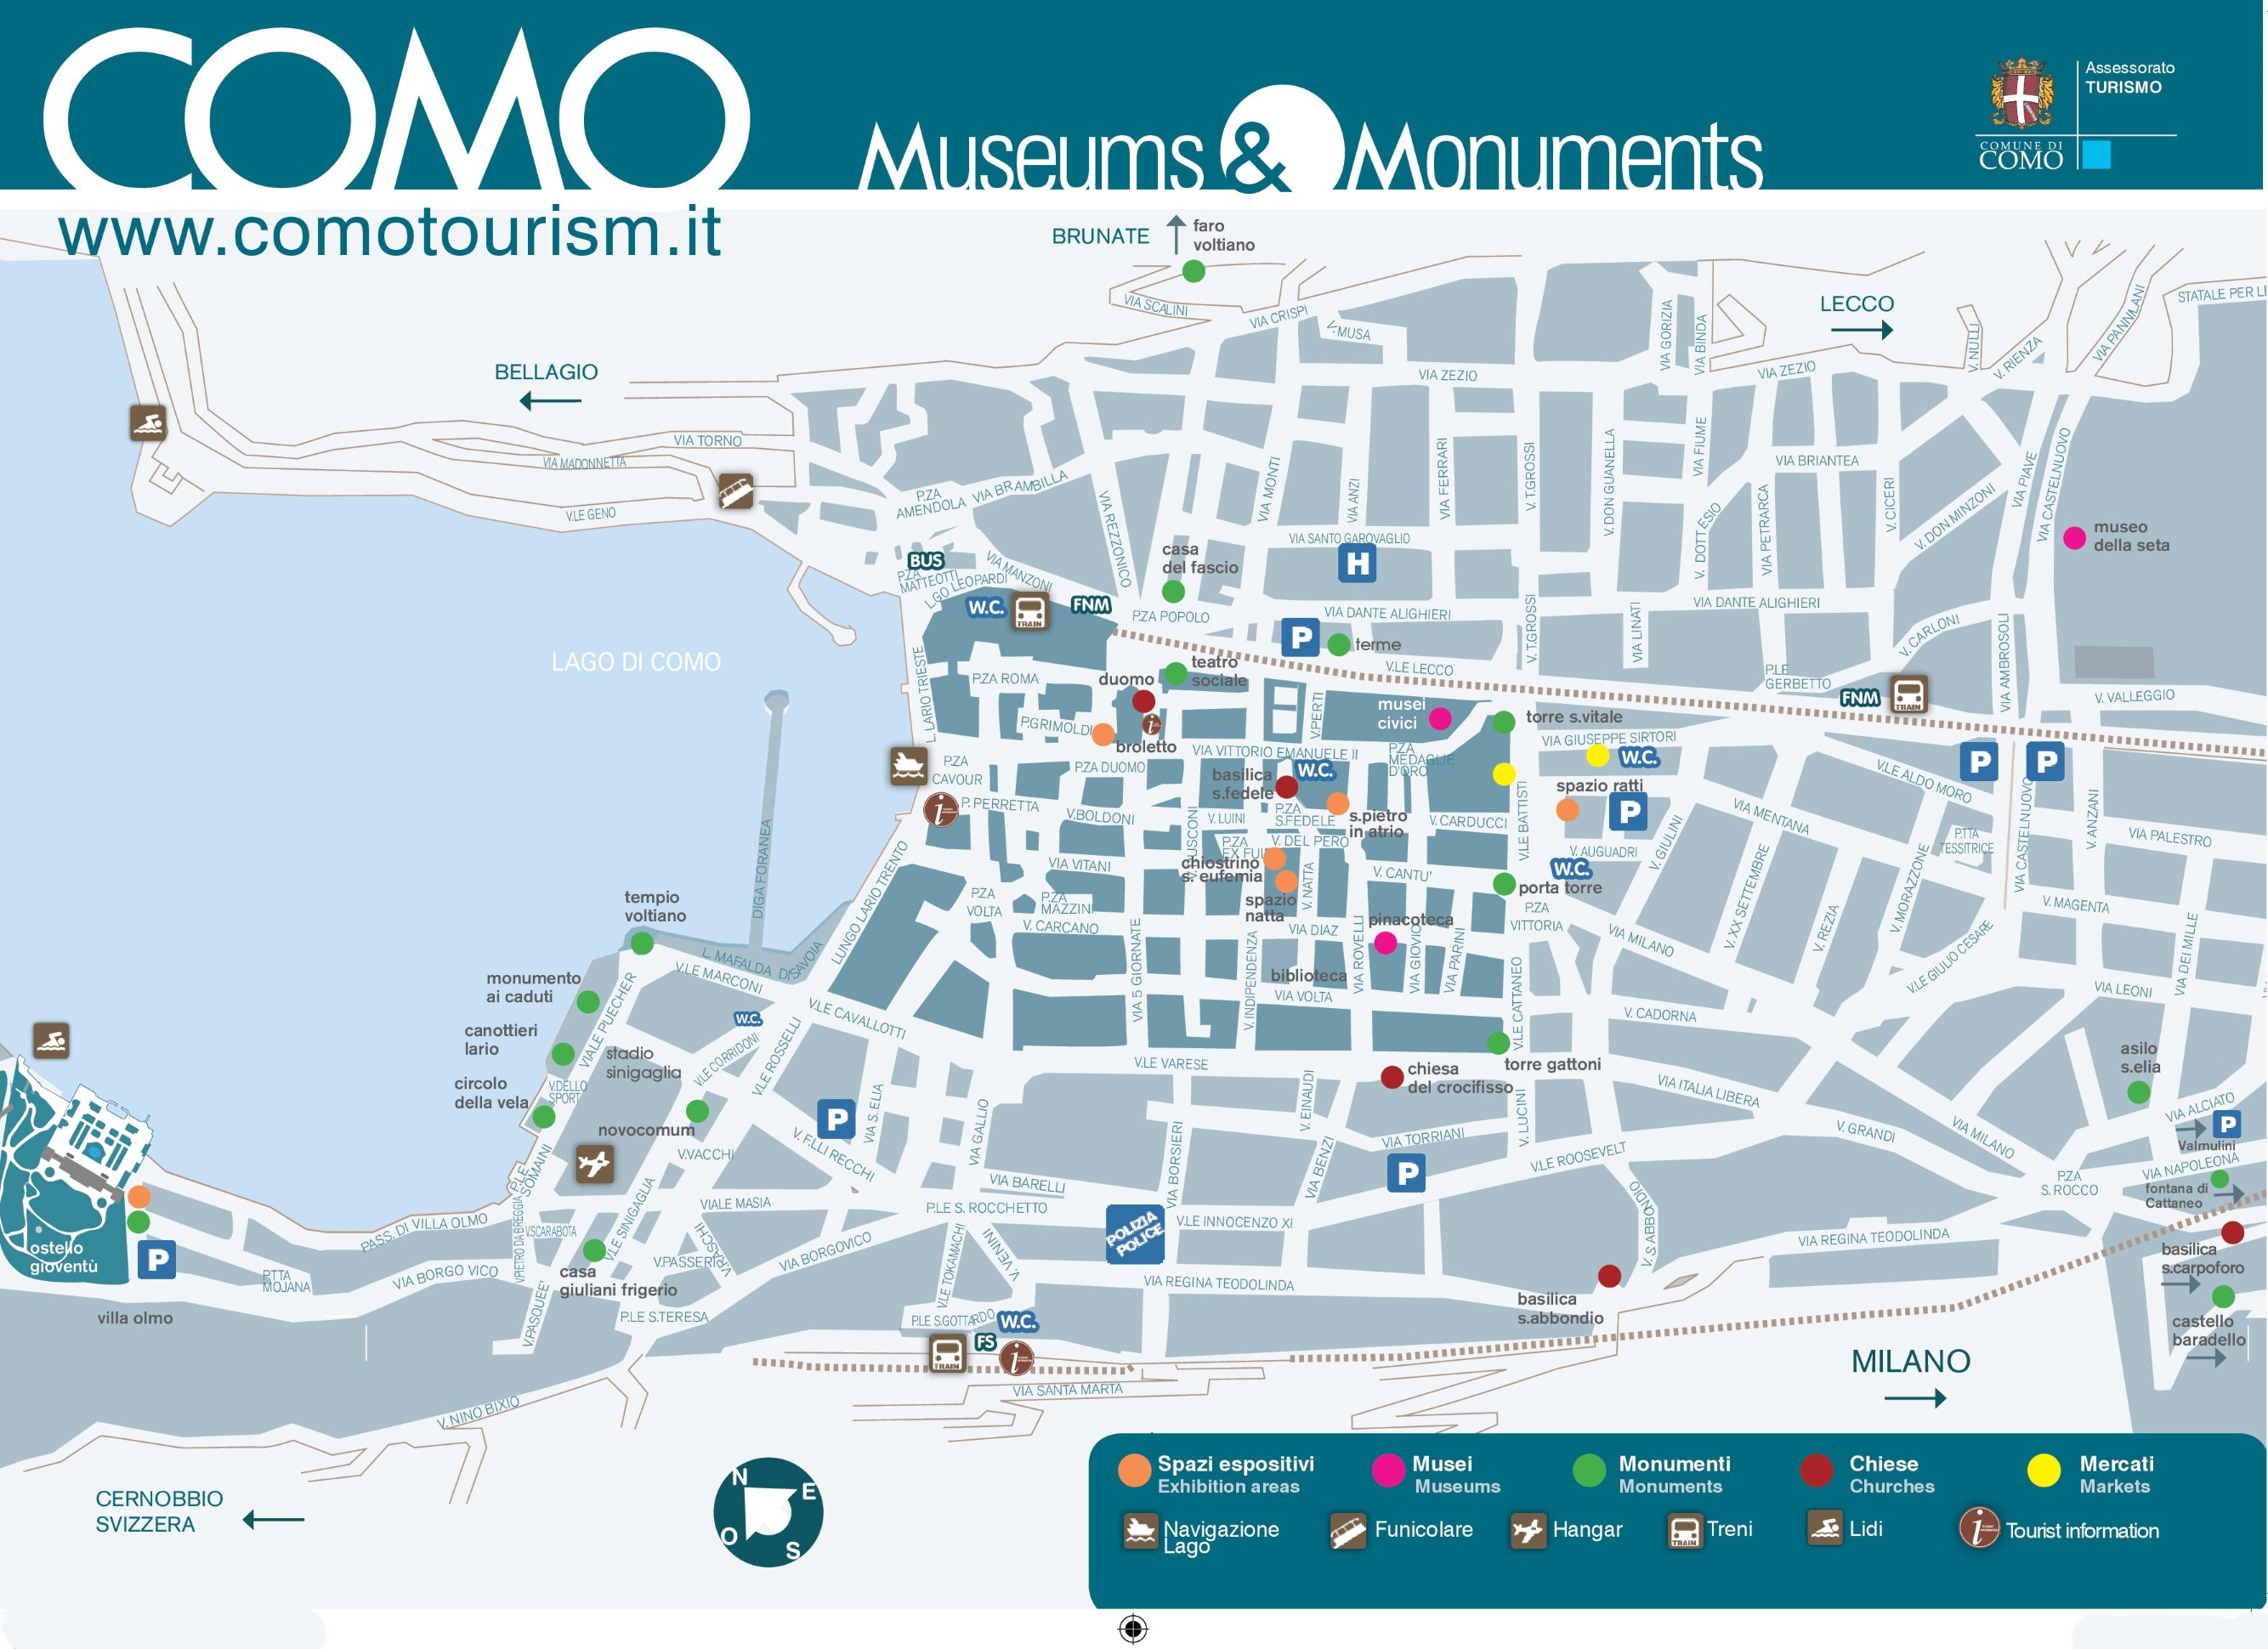 Como tourist attractions map – Jamaica Tourist Attractions Map